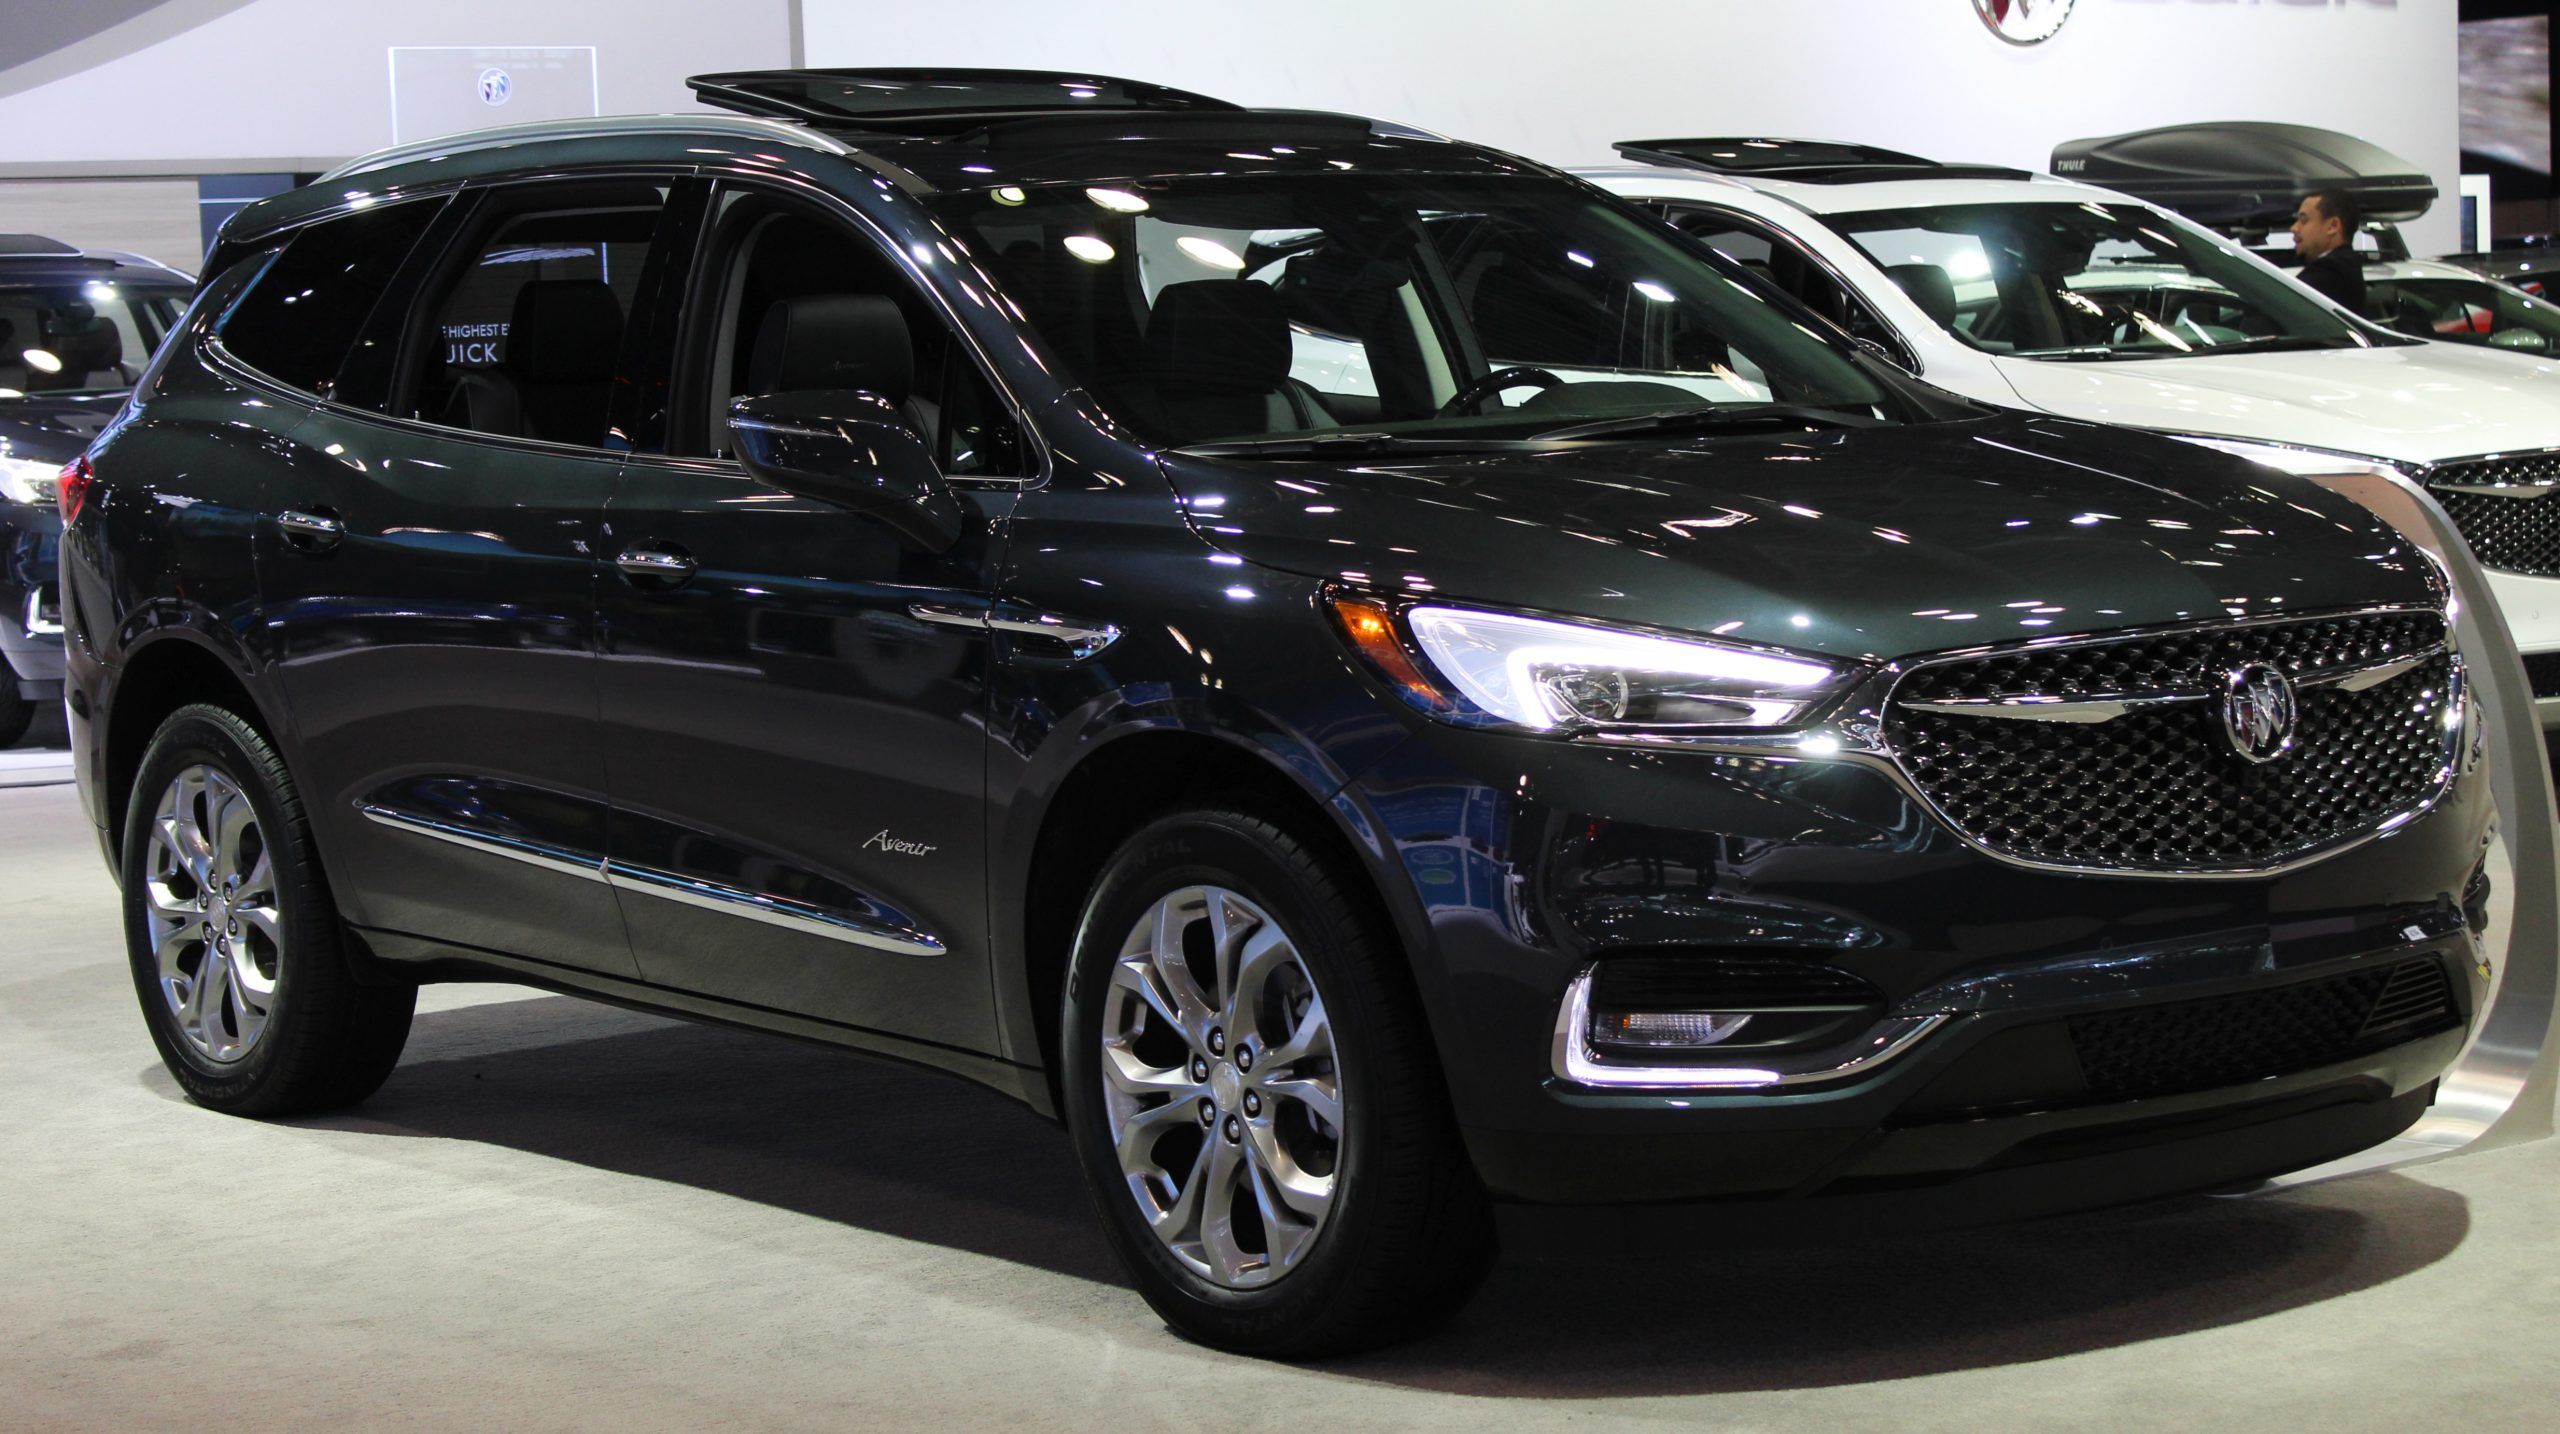 Buick Enclave - Wikipedia New 2022 Buick Encore Cost, Build And Price, Engine